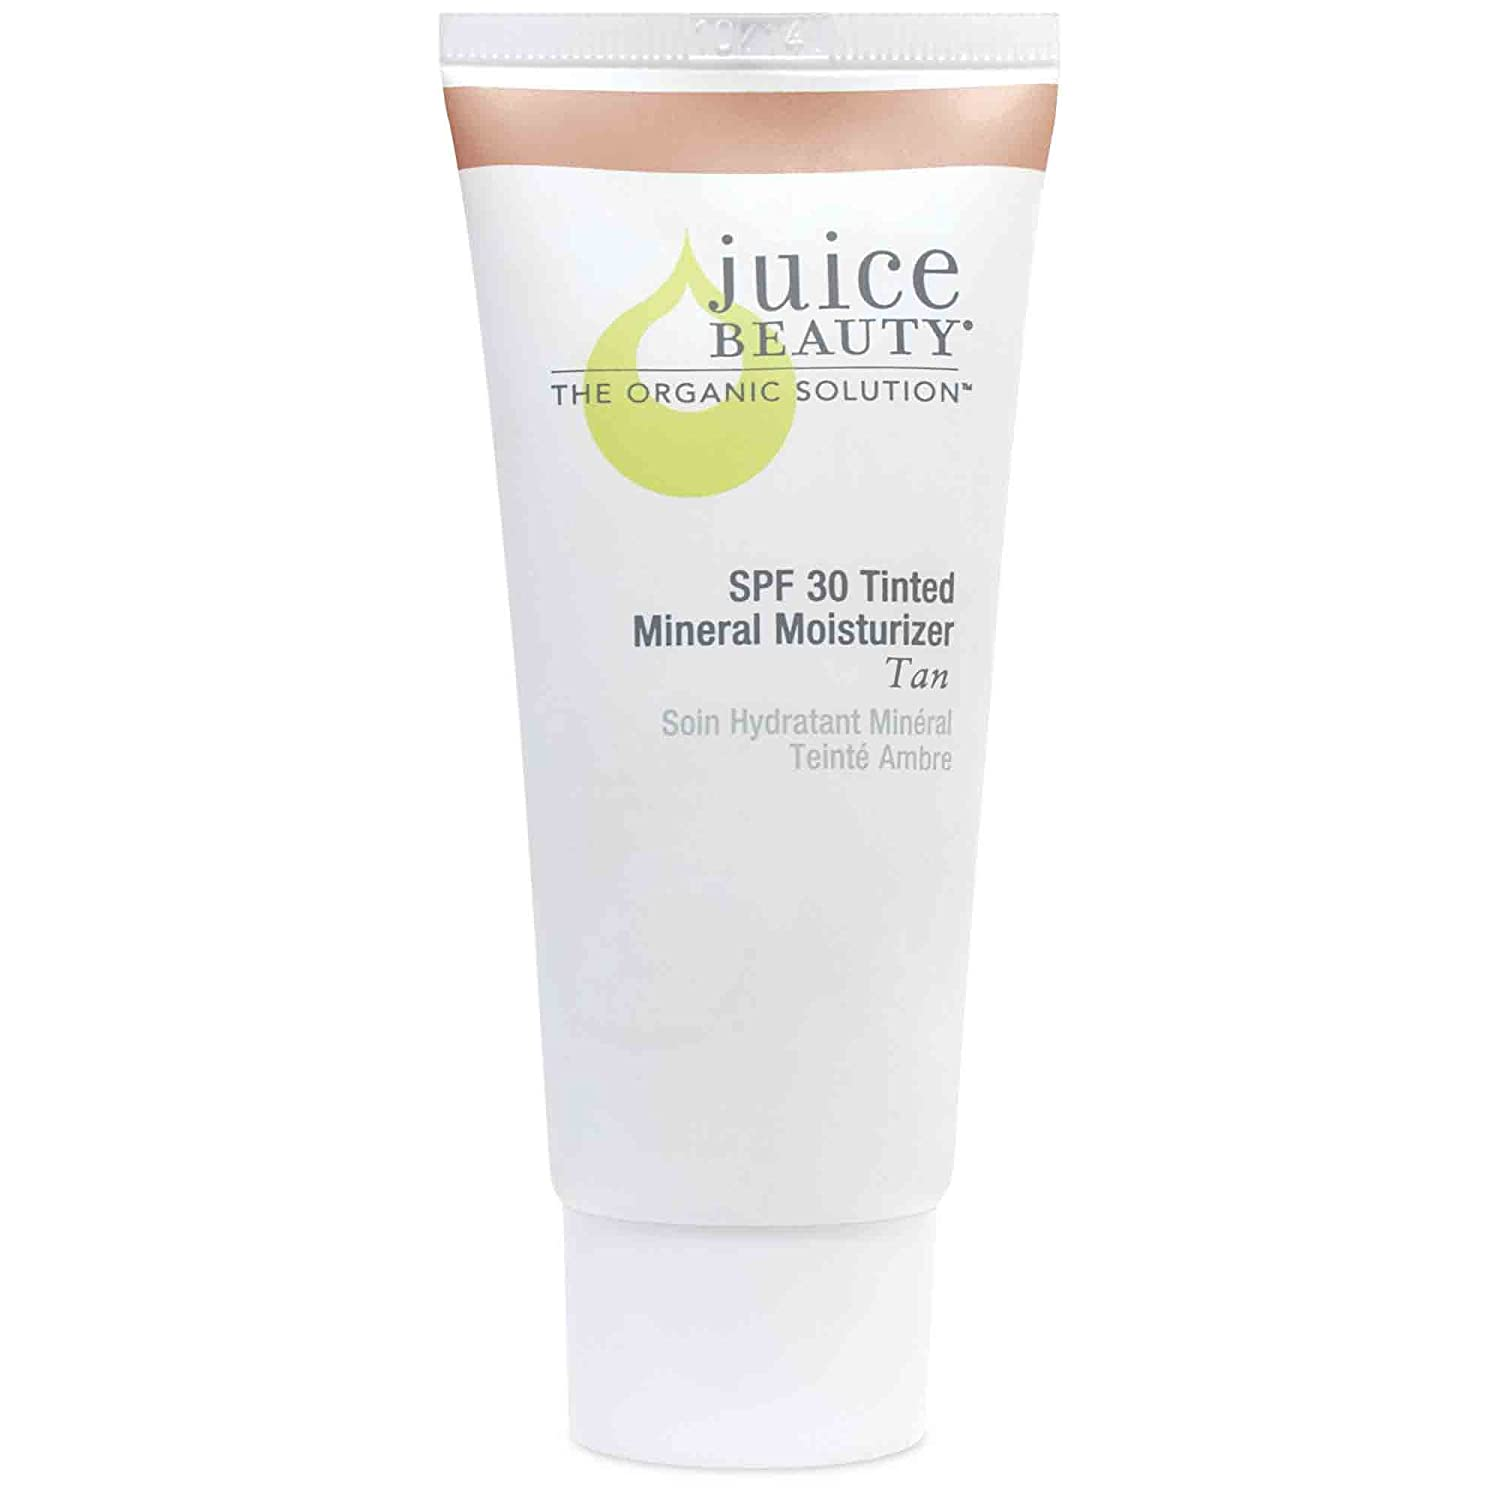 Juice Beauty SPF 30 Tinted Mineral Moisturizer